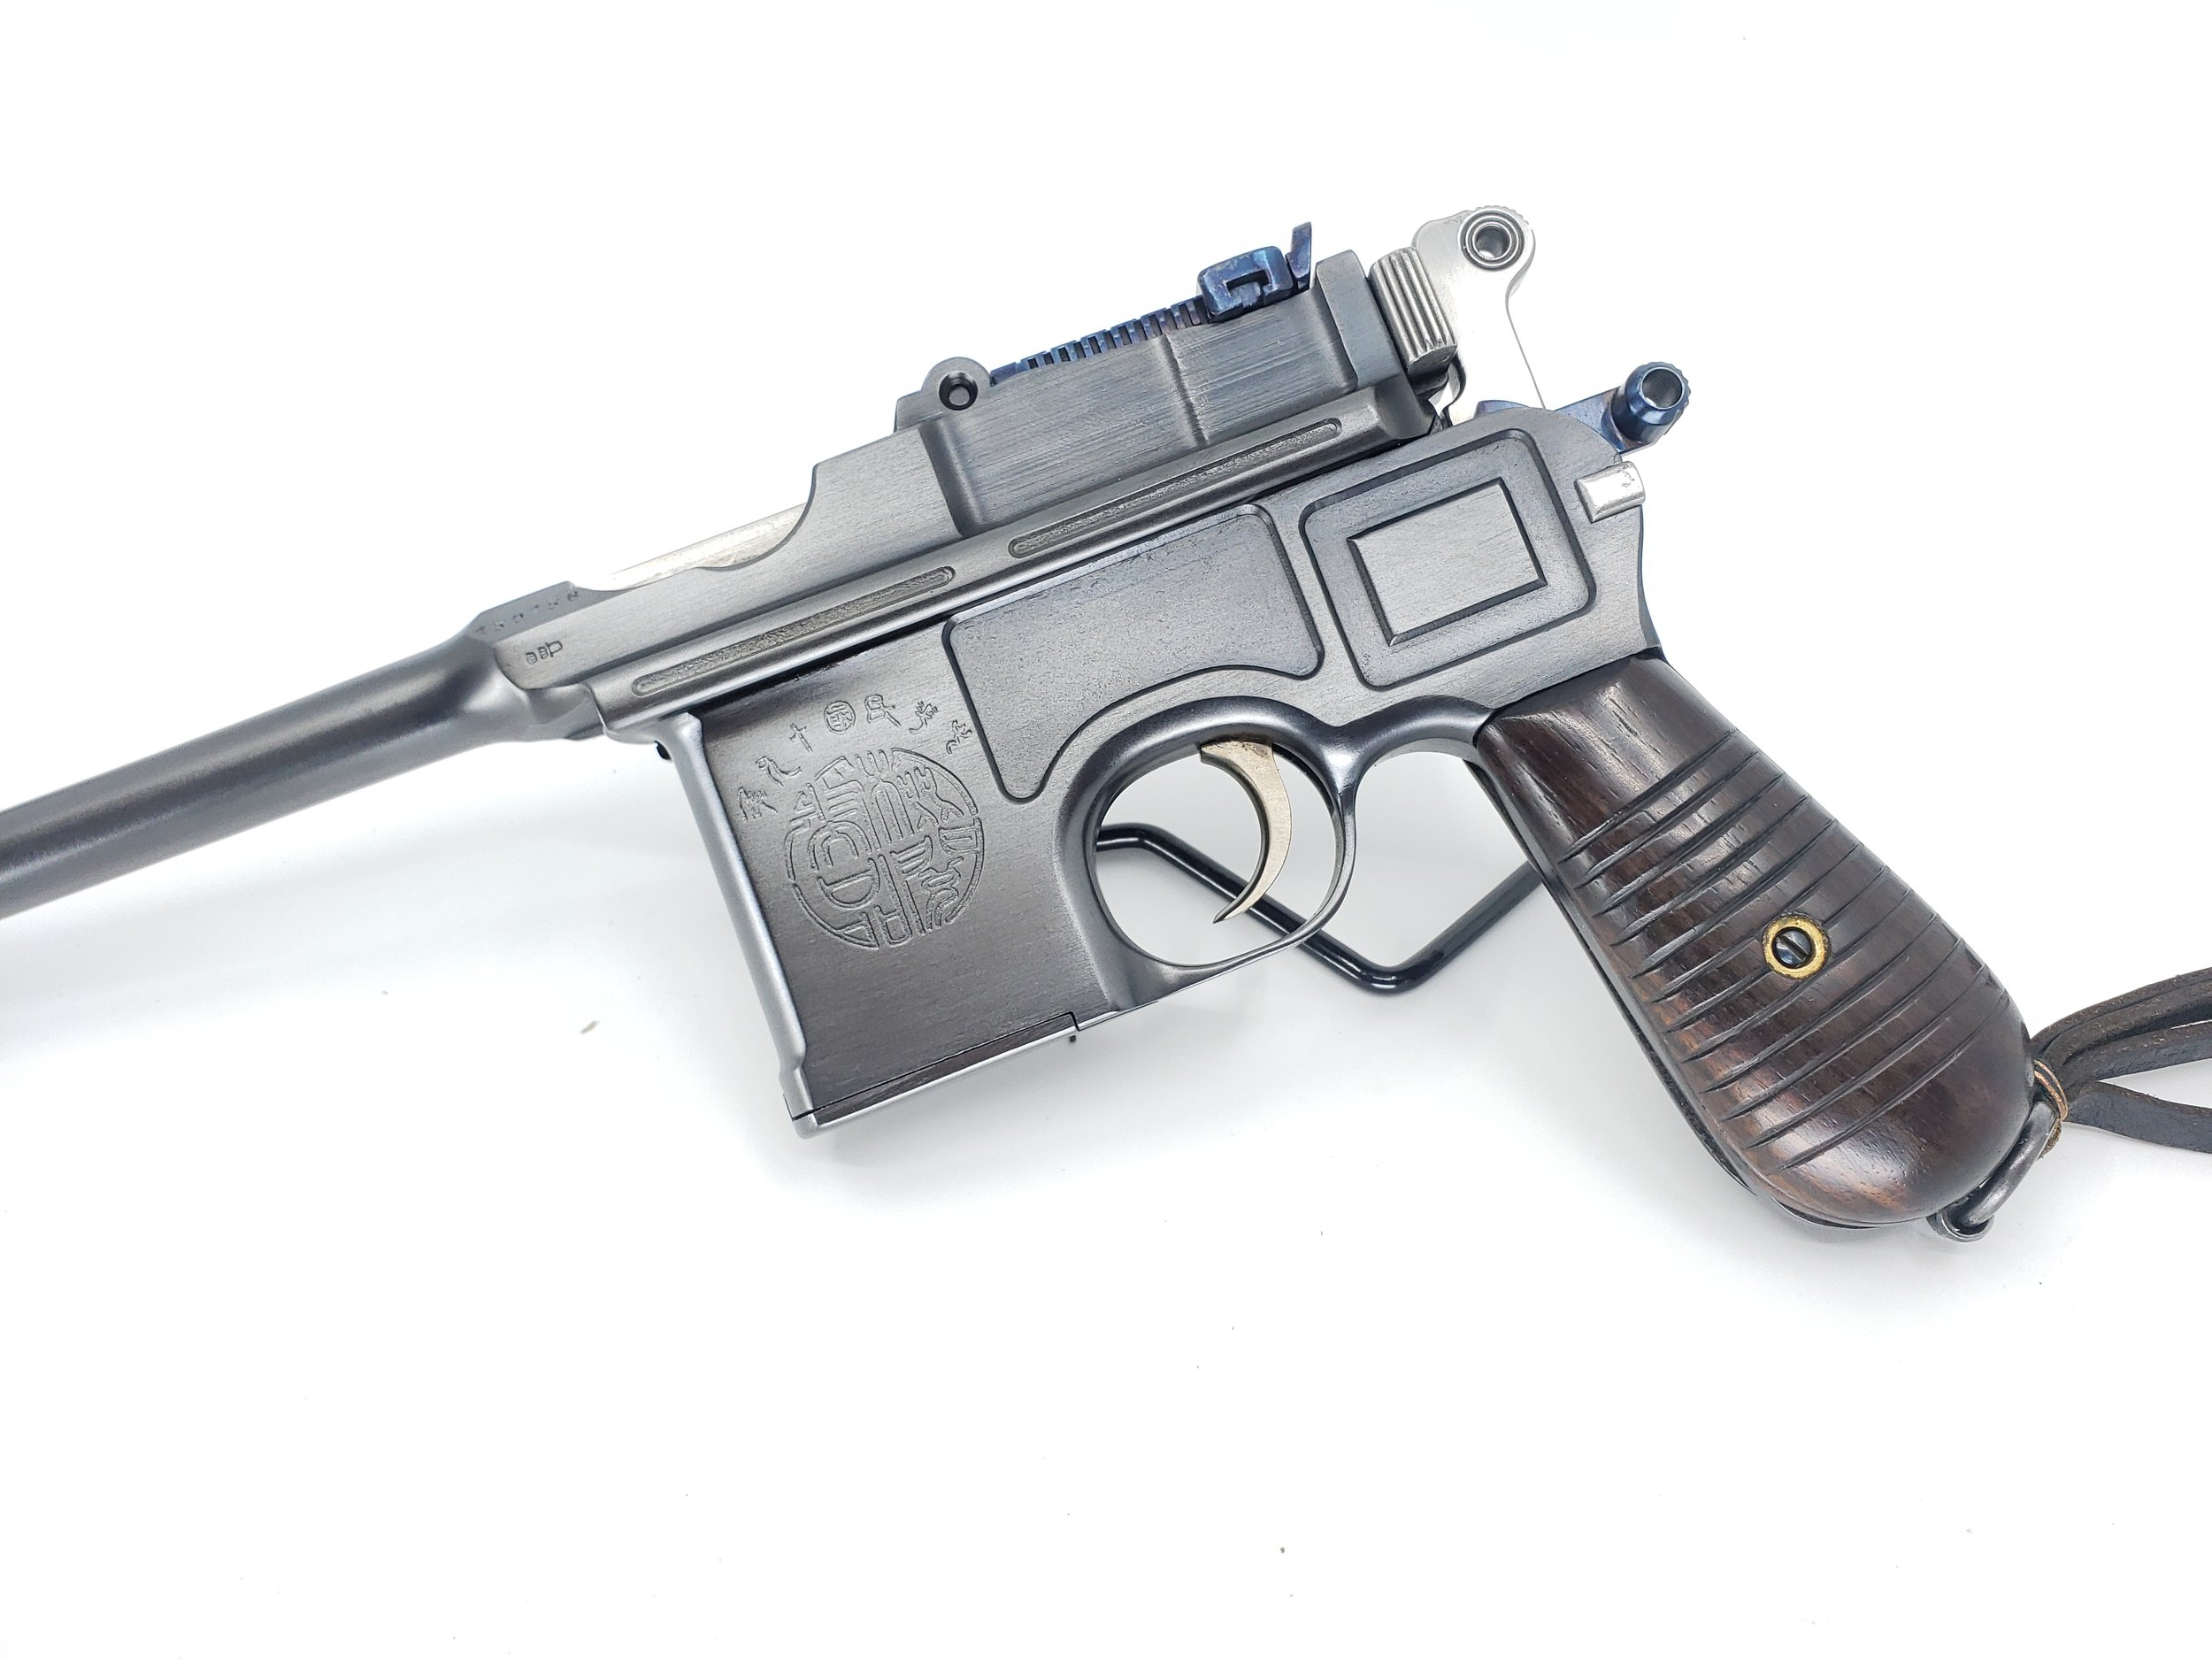 REPAIR - Schlosser Gunsmithing Co. prides itself on being able to repair any firearm, regardless of make or model. With a full machine shop and unparalleled selection of parts, we can make your firearm function like new.